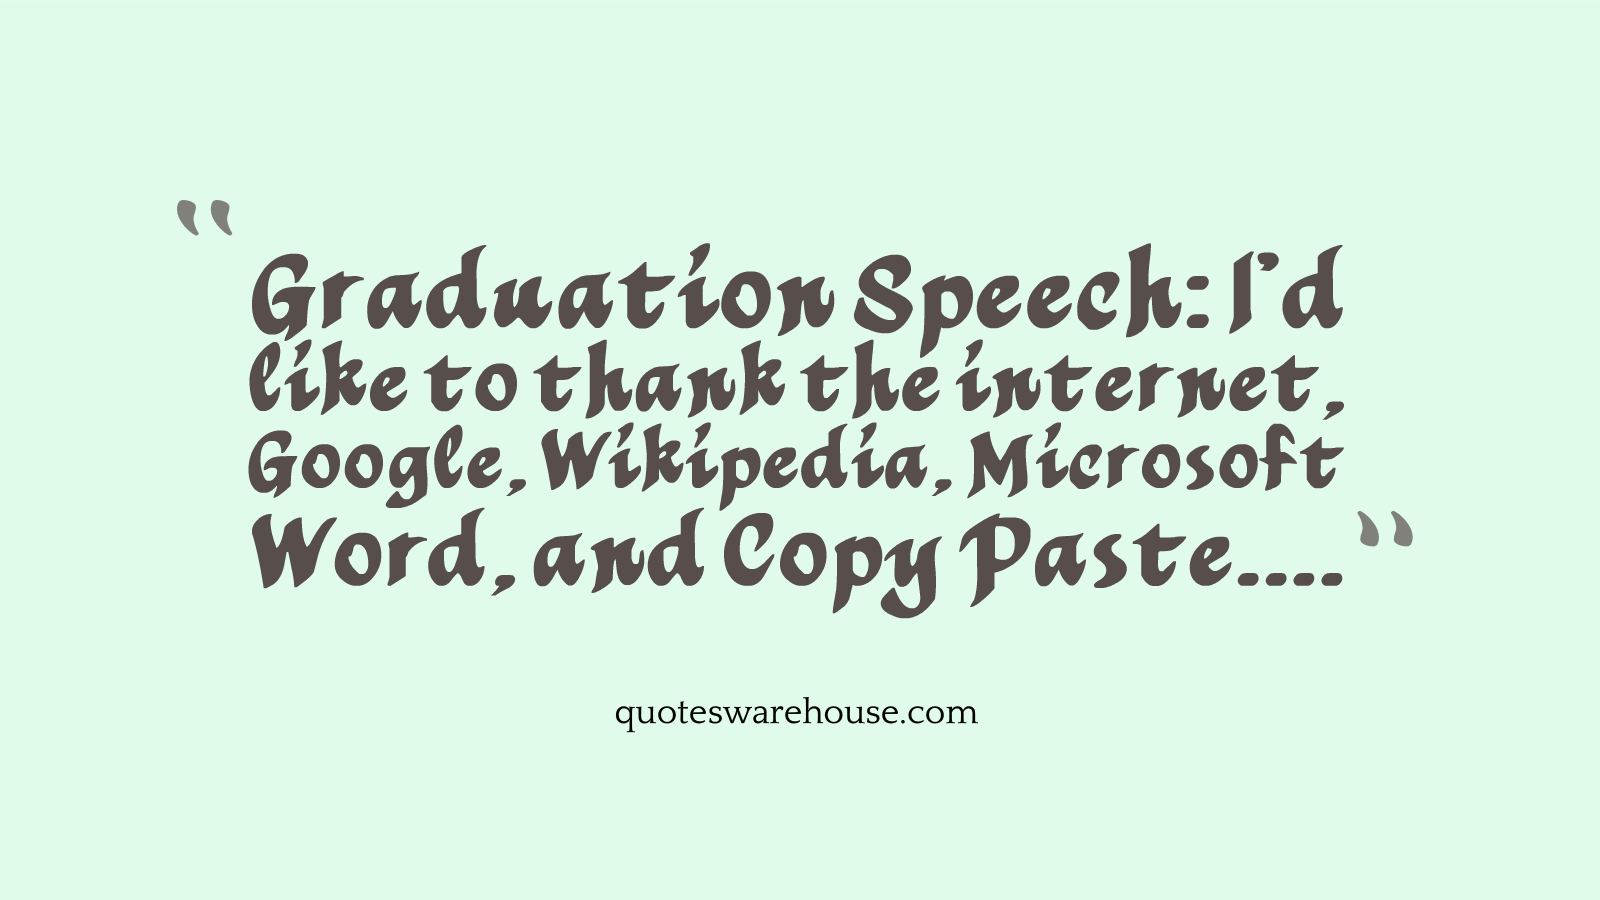 Quotes For Graduation Google Search Graduation Quotes Funny Graduation Quotes Graduation Wishes Quotes